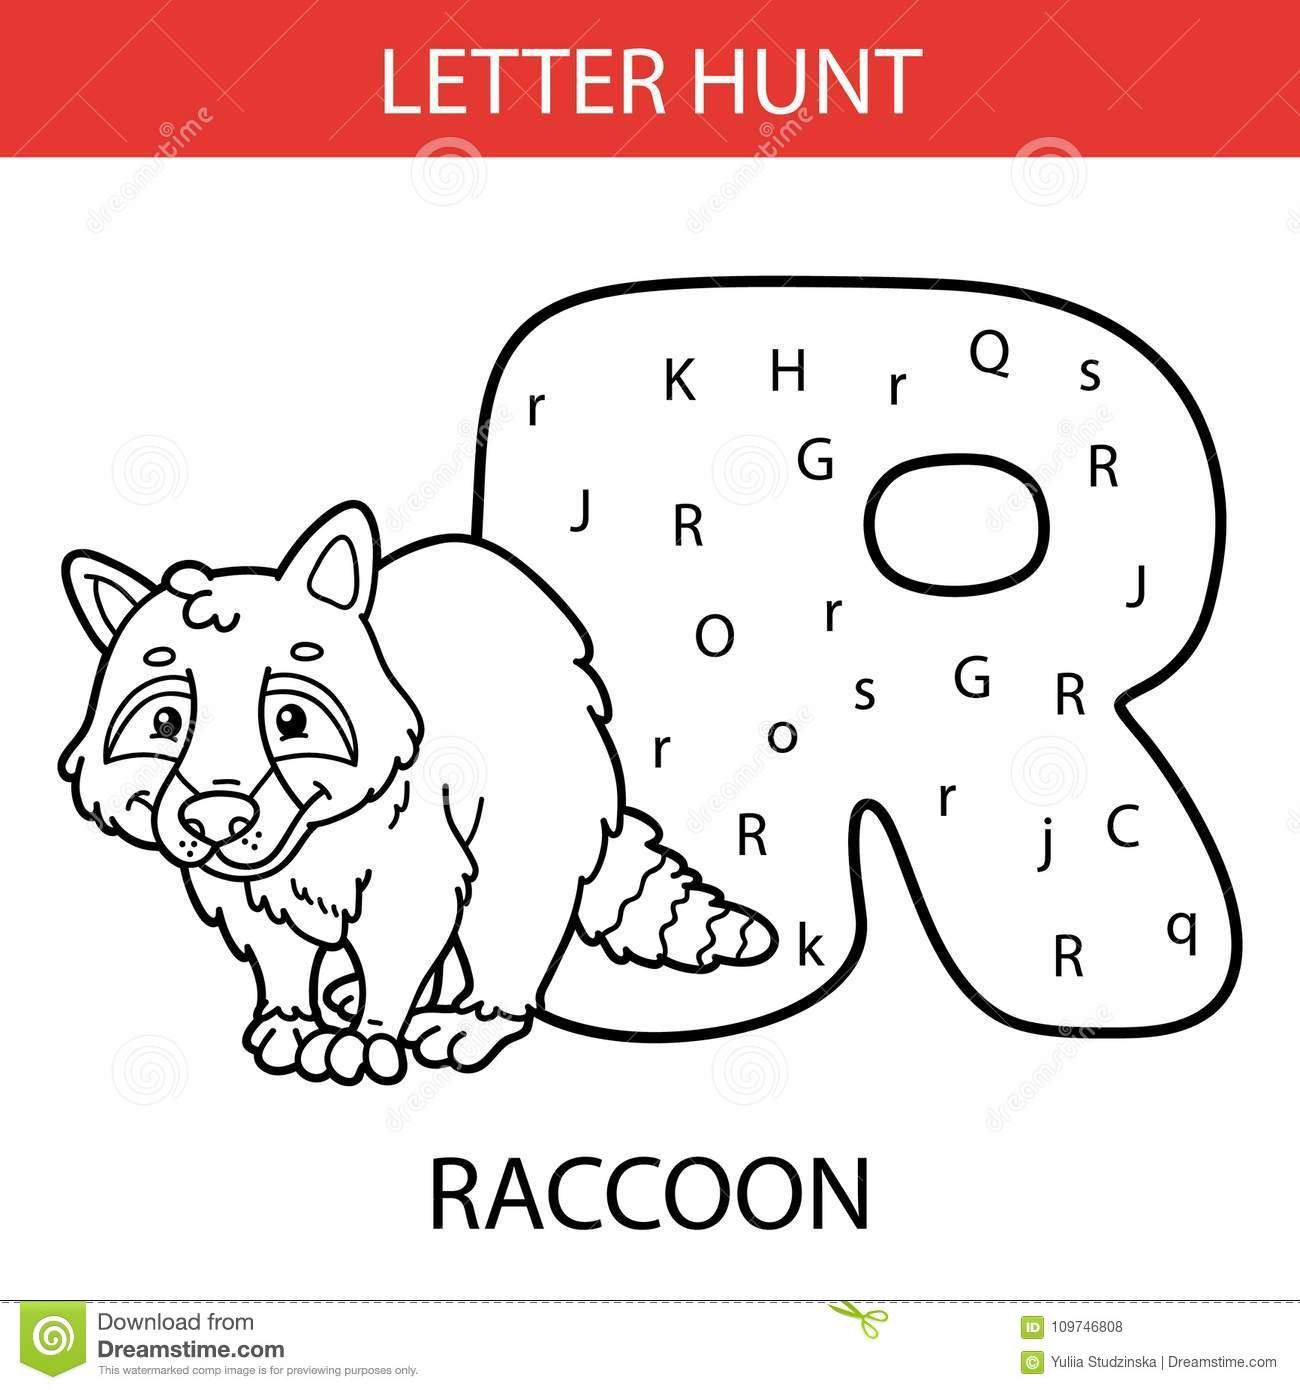 Animal Letter Hunt Raccoon Stock Vector Illustration Of